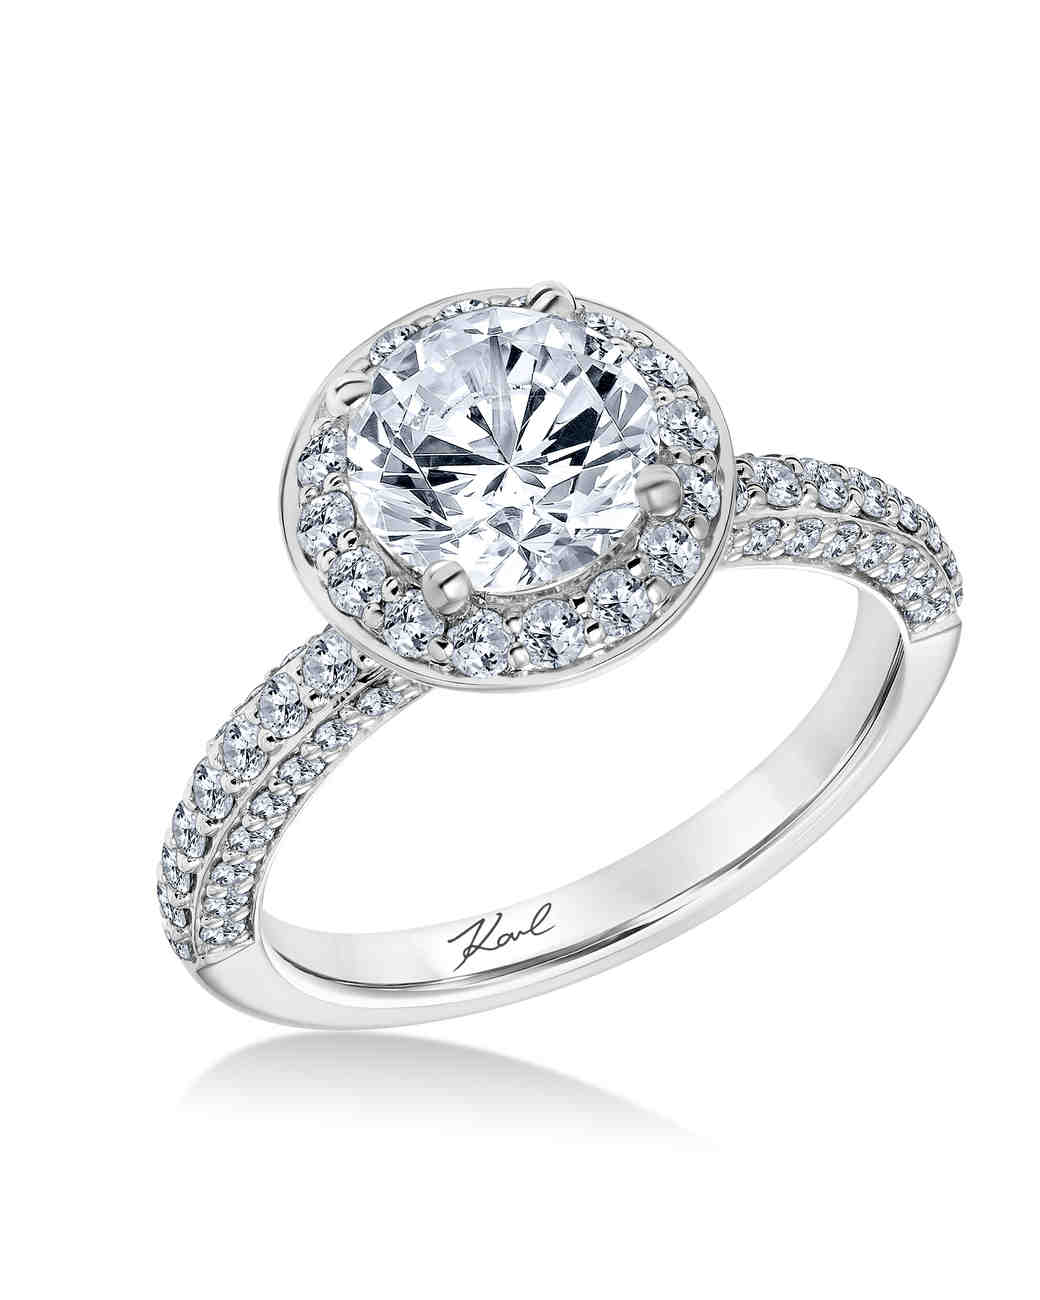 Karl Lagerfeld White Gold Engagement Ring